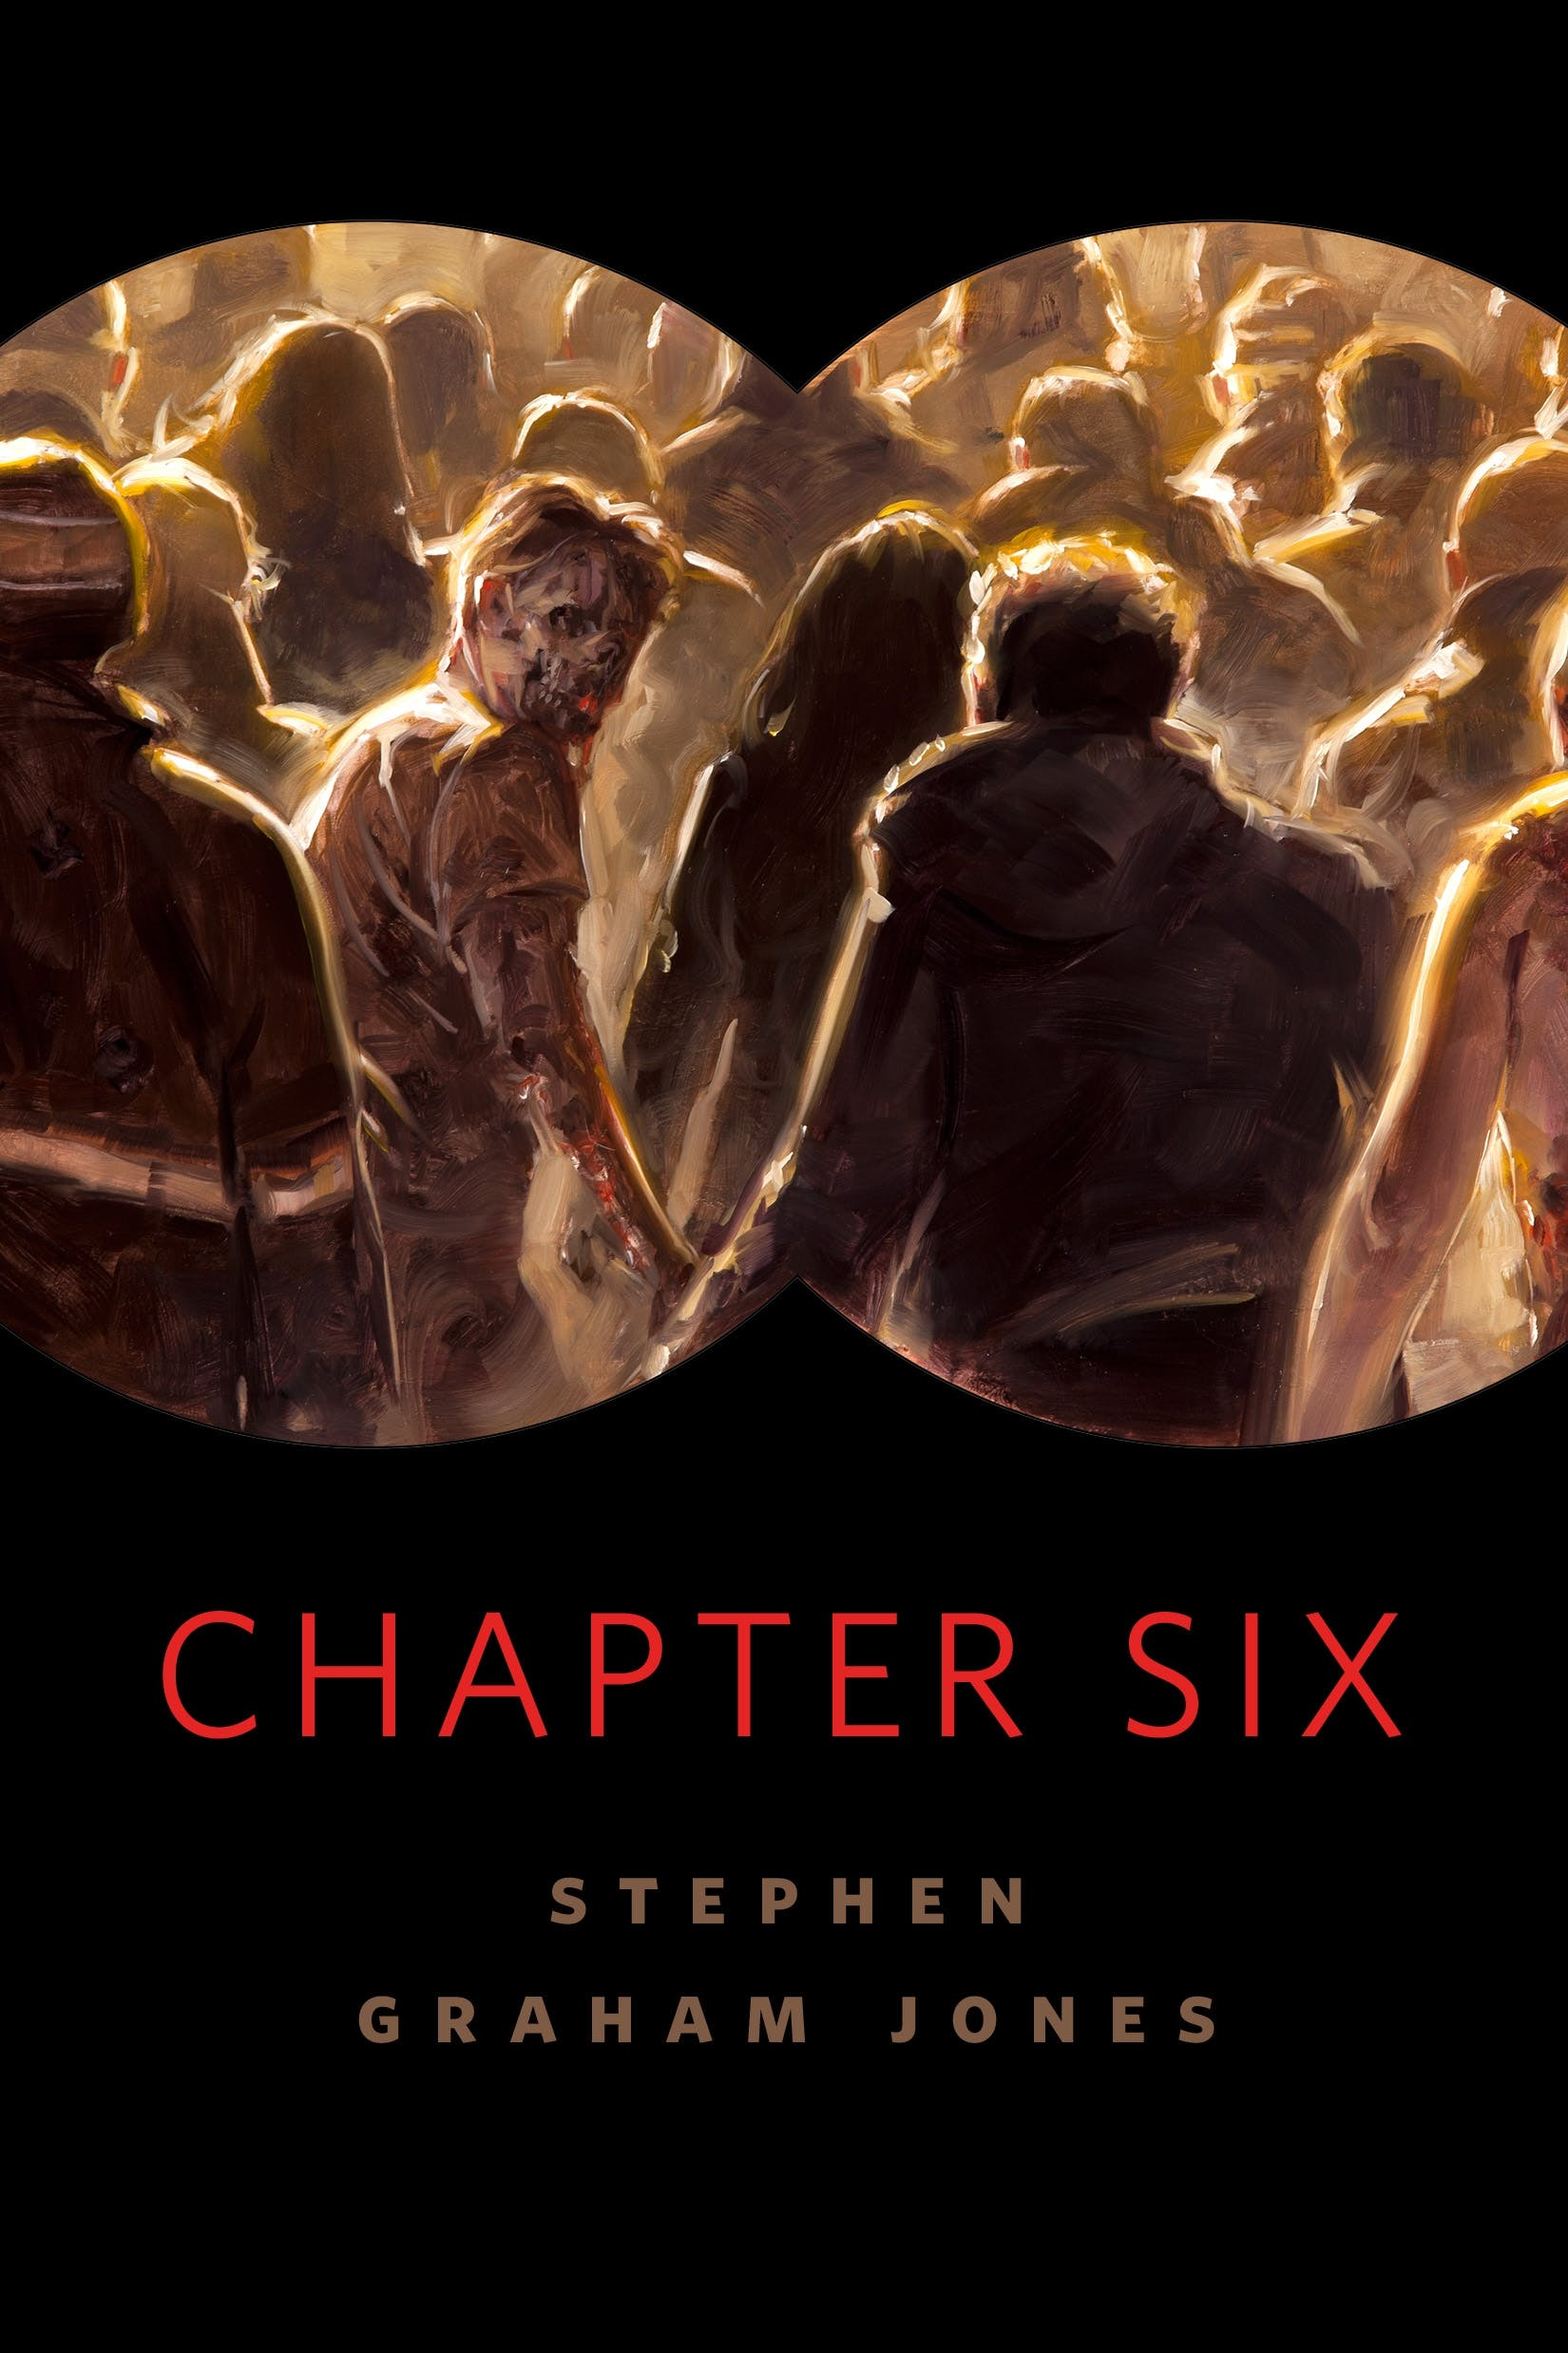 Image of Chapter Six